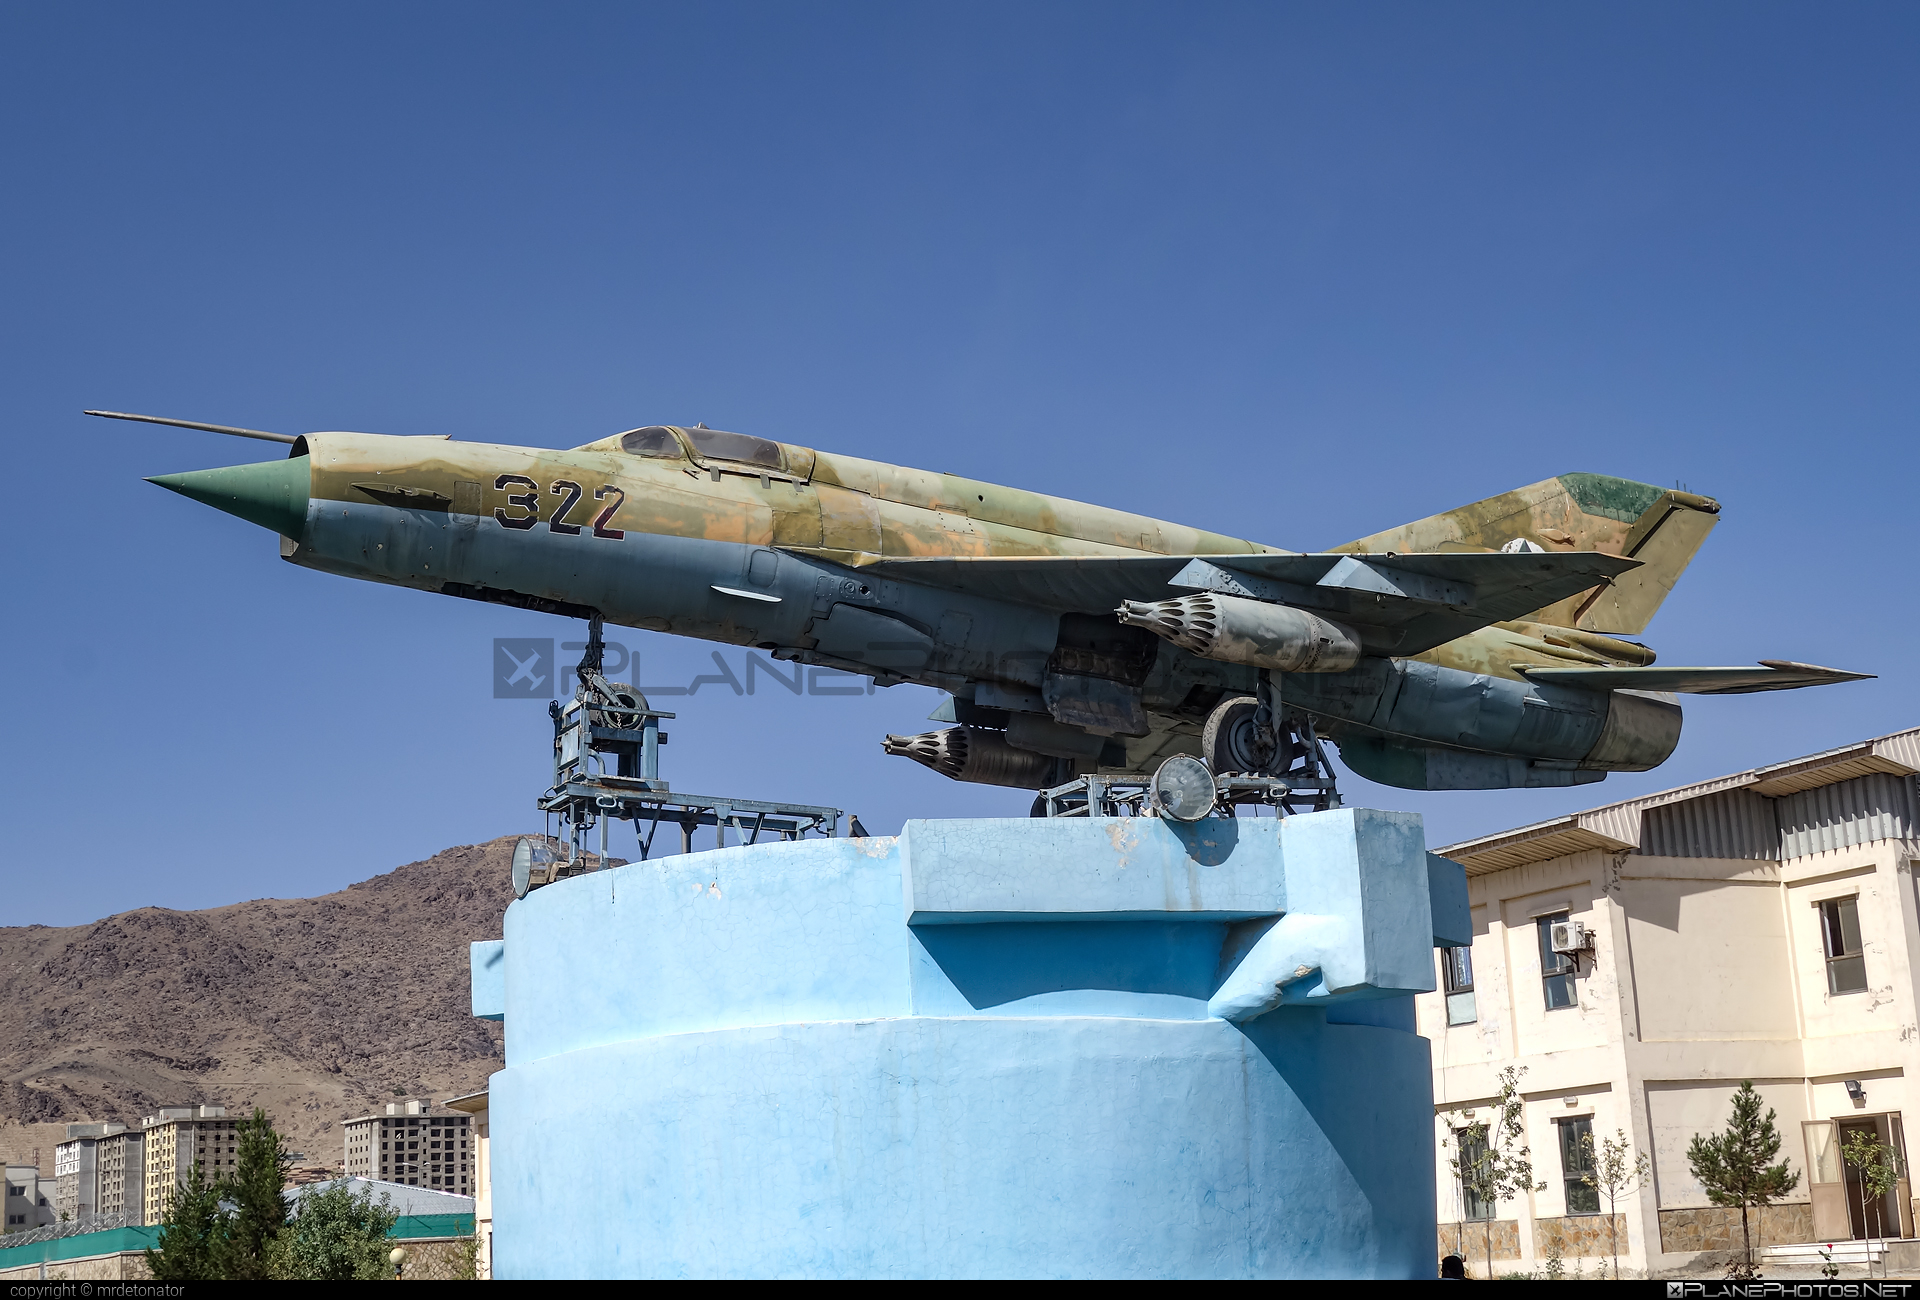 Mikoyan-Gurevich MiG-21MF - 322 operated by Afghan Air Force #afghanairforce #mig #mig21 #mig21mf #mikoyangurevich